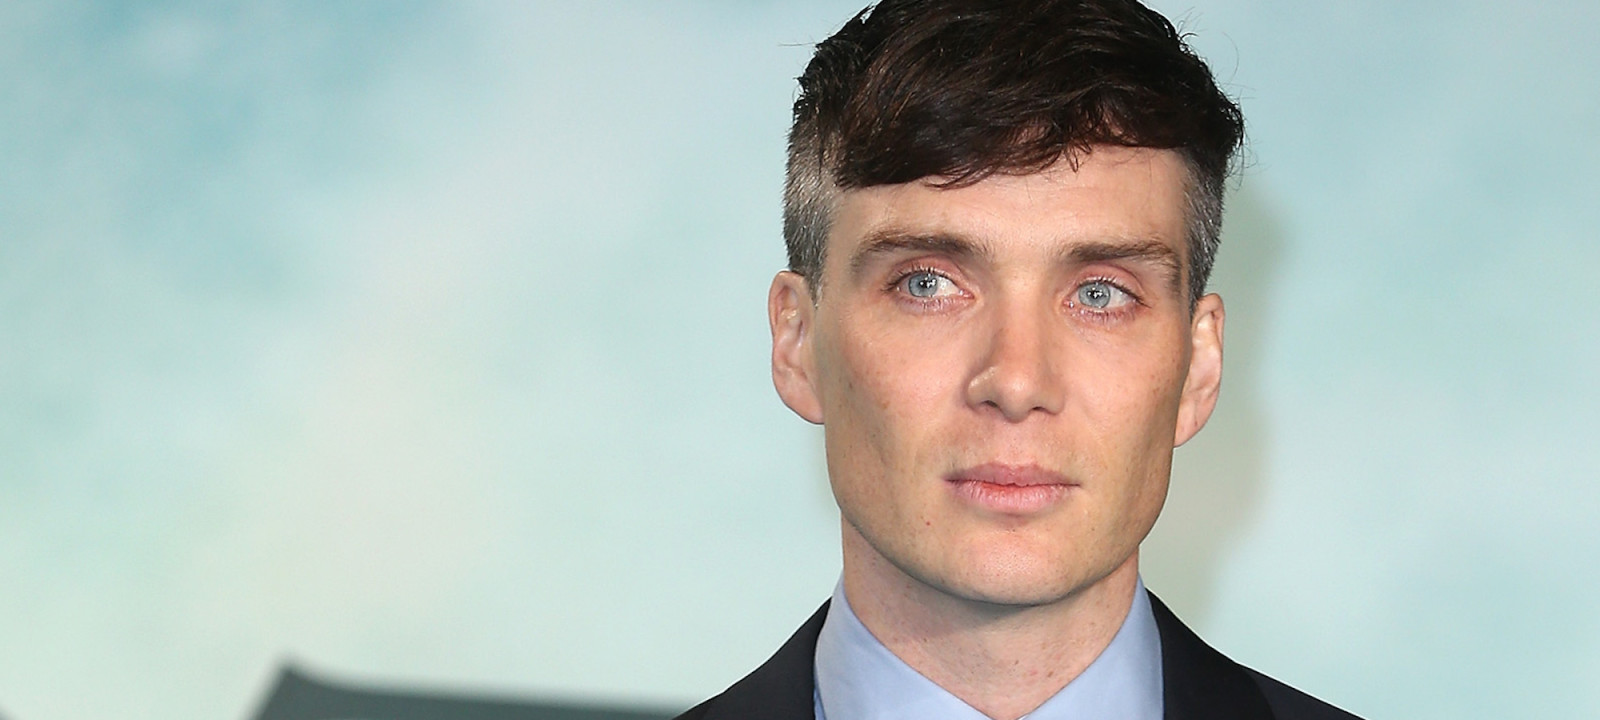 """Cillian Murphy attends the Red Carpet Arrivals for the European Film Premiere of """"In The Heart Of The Sea"""">> at Empire Leicester Square on December 2, 2015 in London, England."""